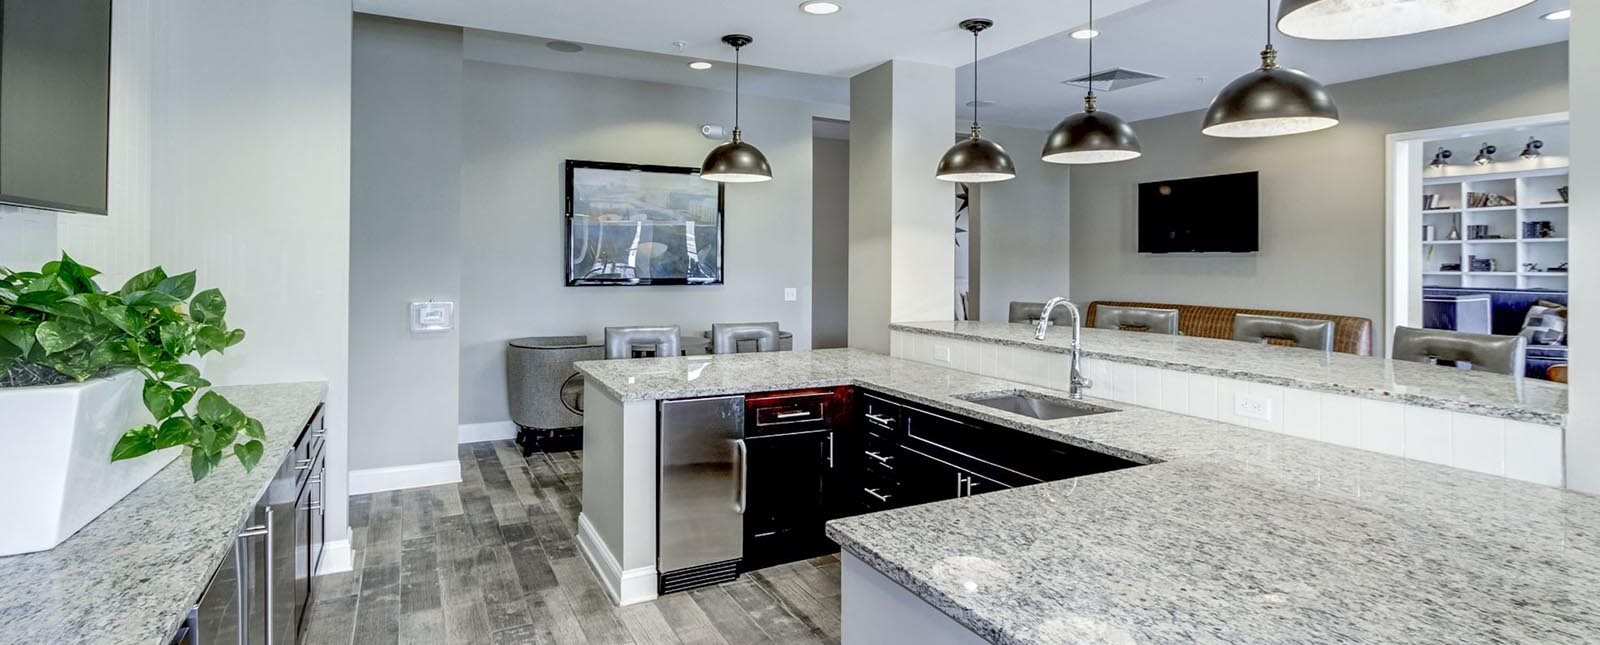 Catering Kitchen at The Haven luxury apartments in Malvern, PA